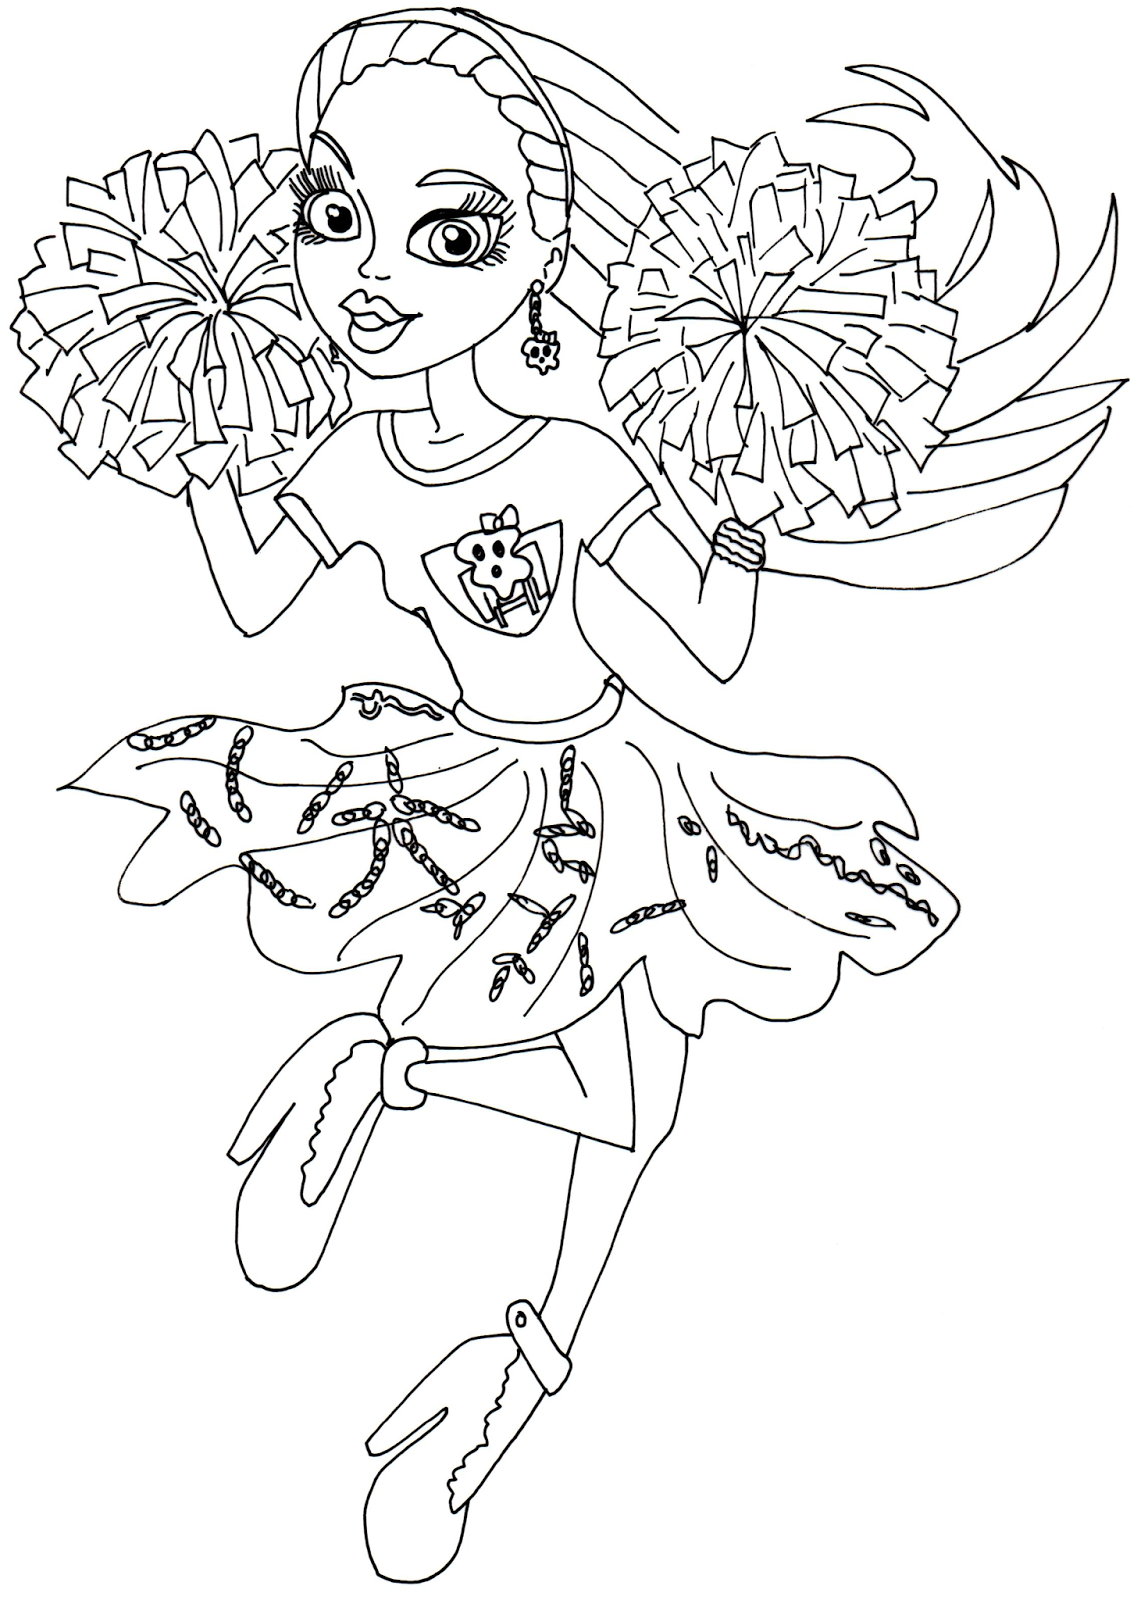 Free Printable Monster High Coloring Pages: Spectra